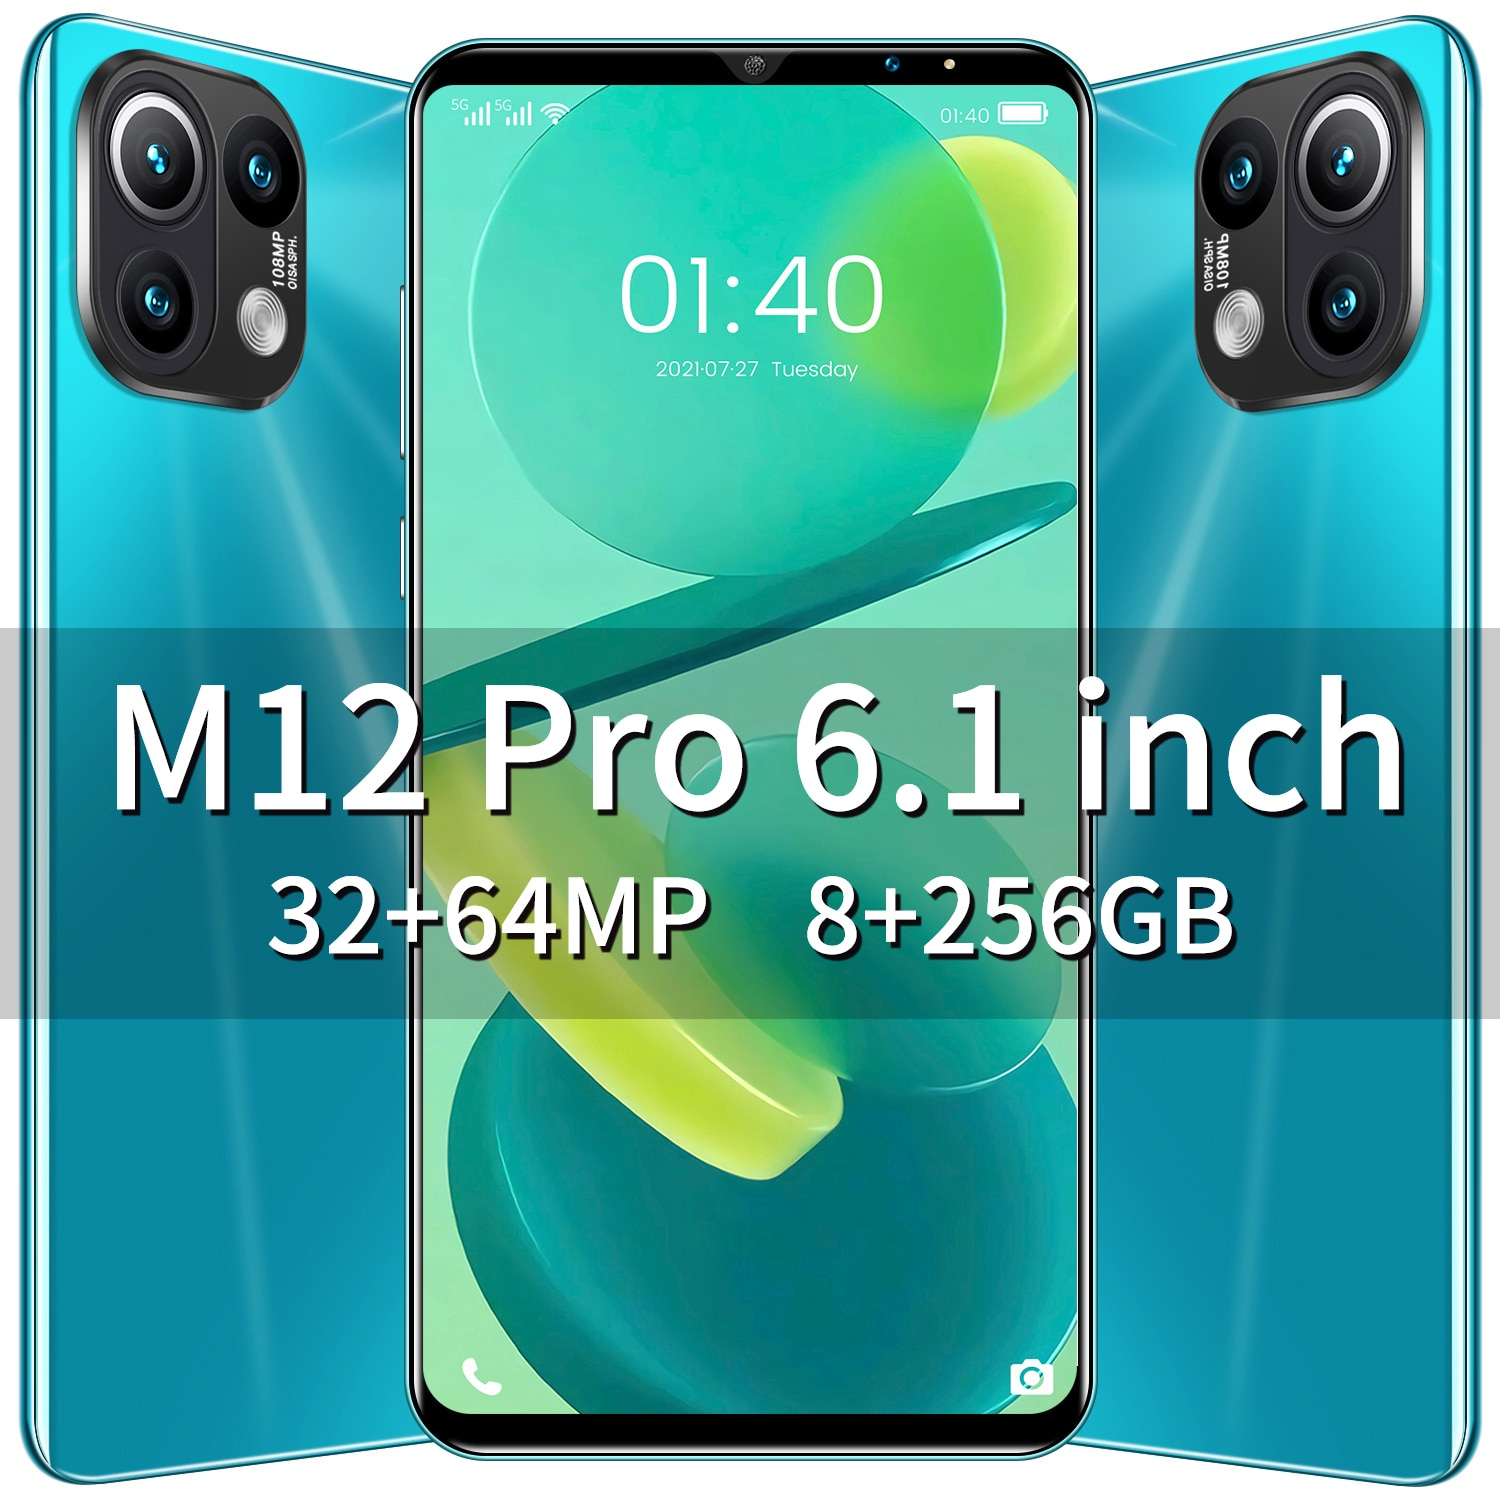 New Arrival M12 Pro 6.1 Inch 8+256G 32MP+64MP Smartphone 5G Deca Core MT6889 1440*3200 6000MAH Android 11 Face ID Dual SIM